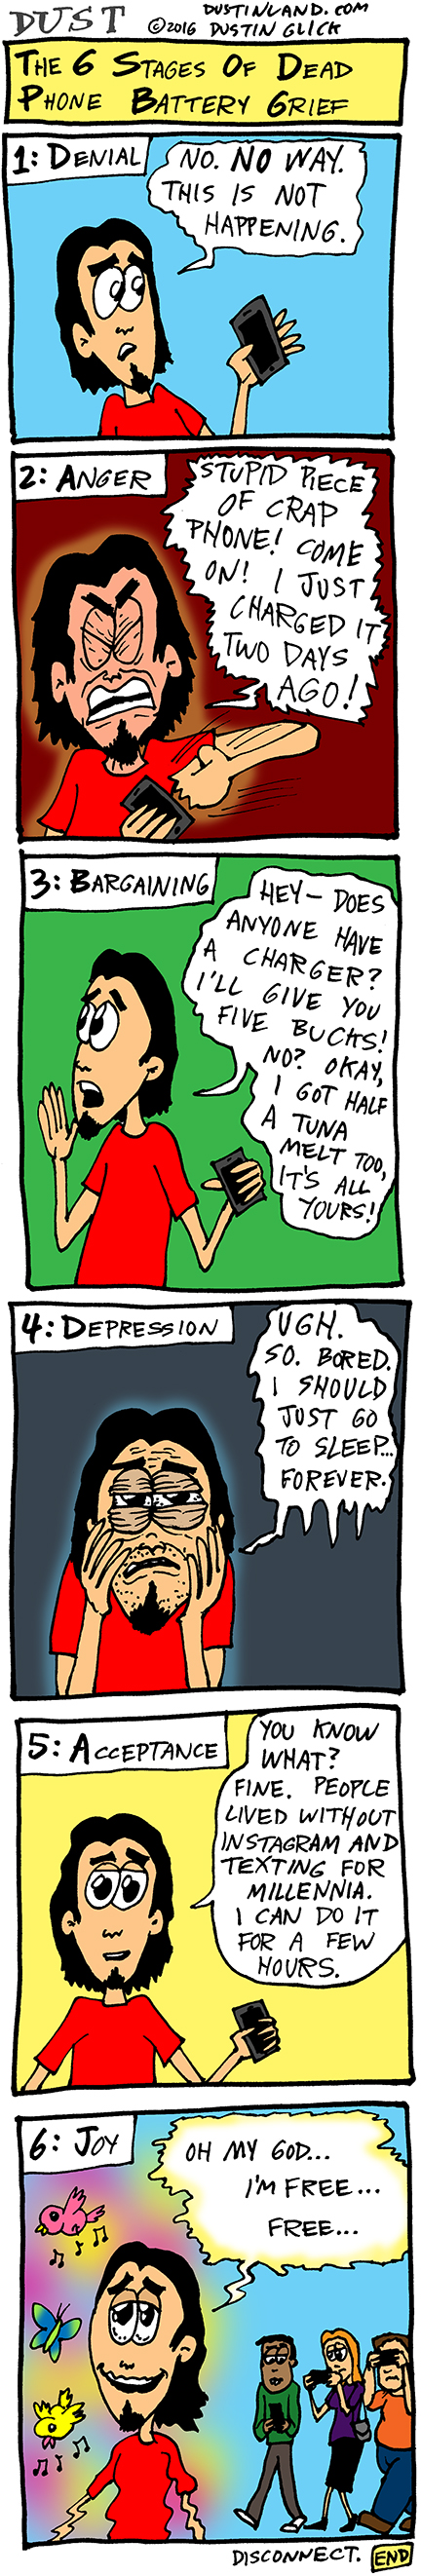 dustinland dead phone battery grief comic